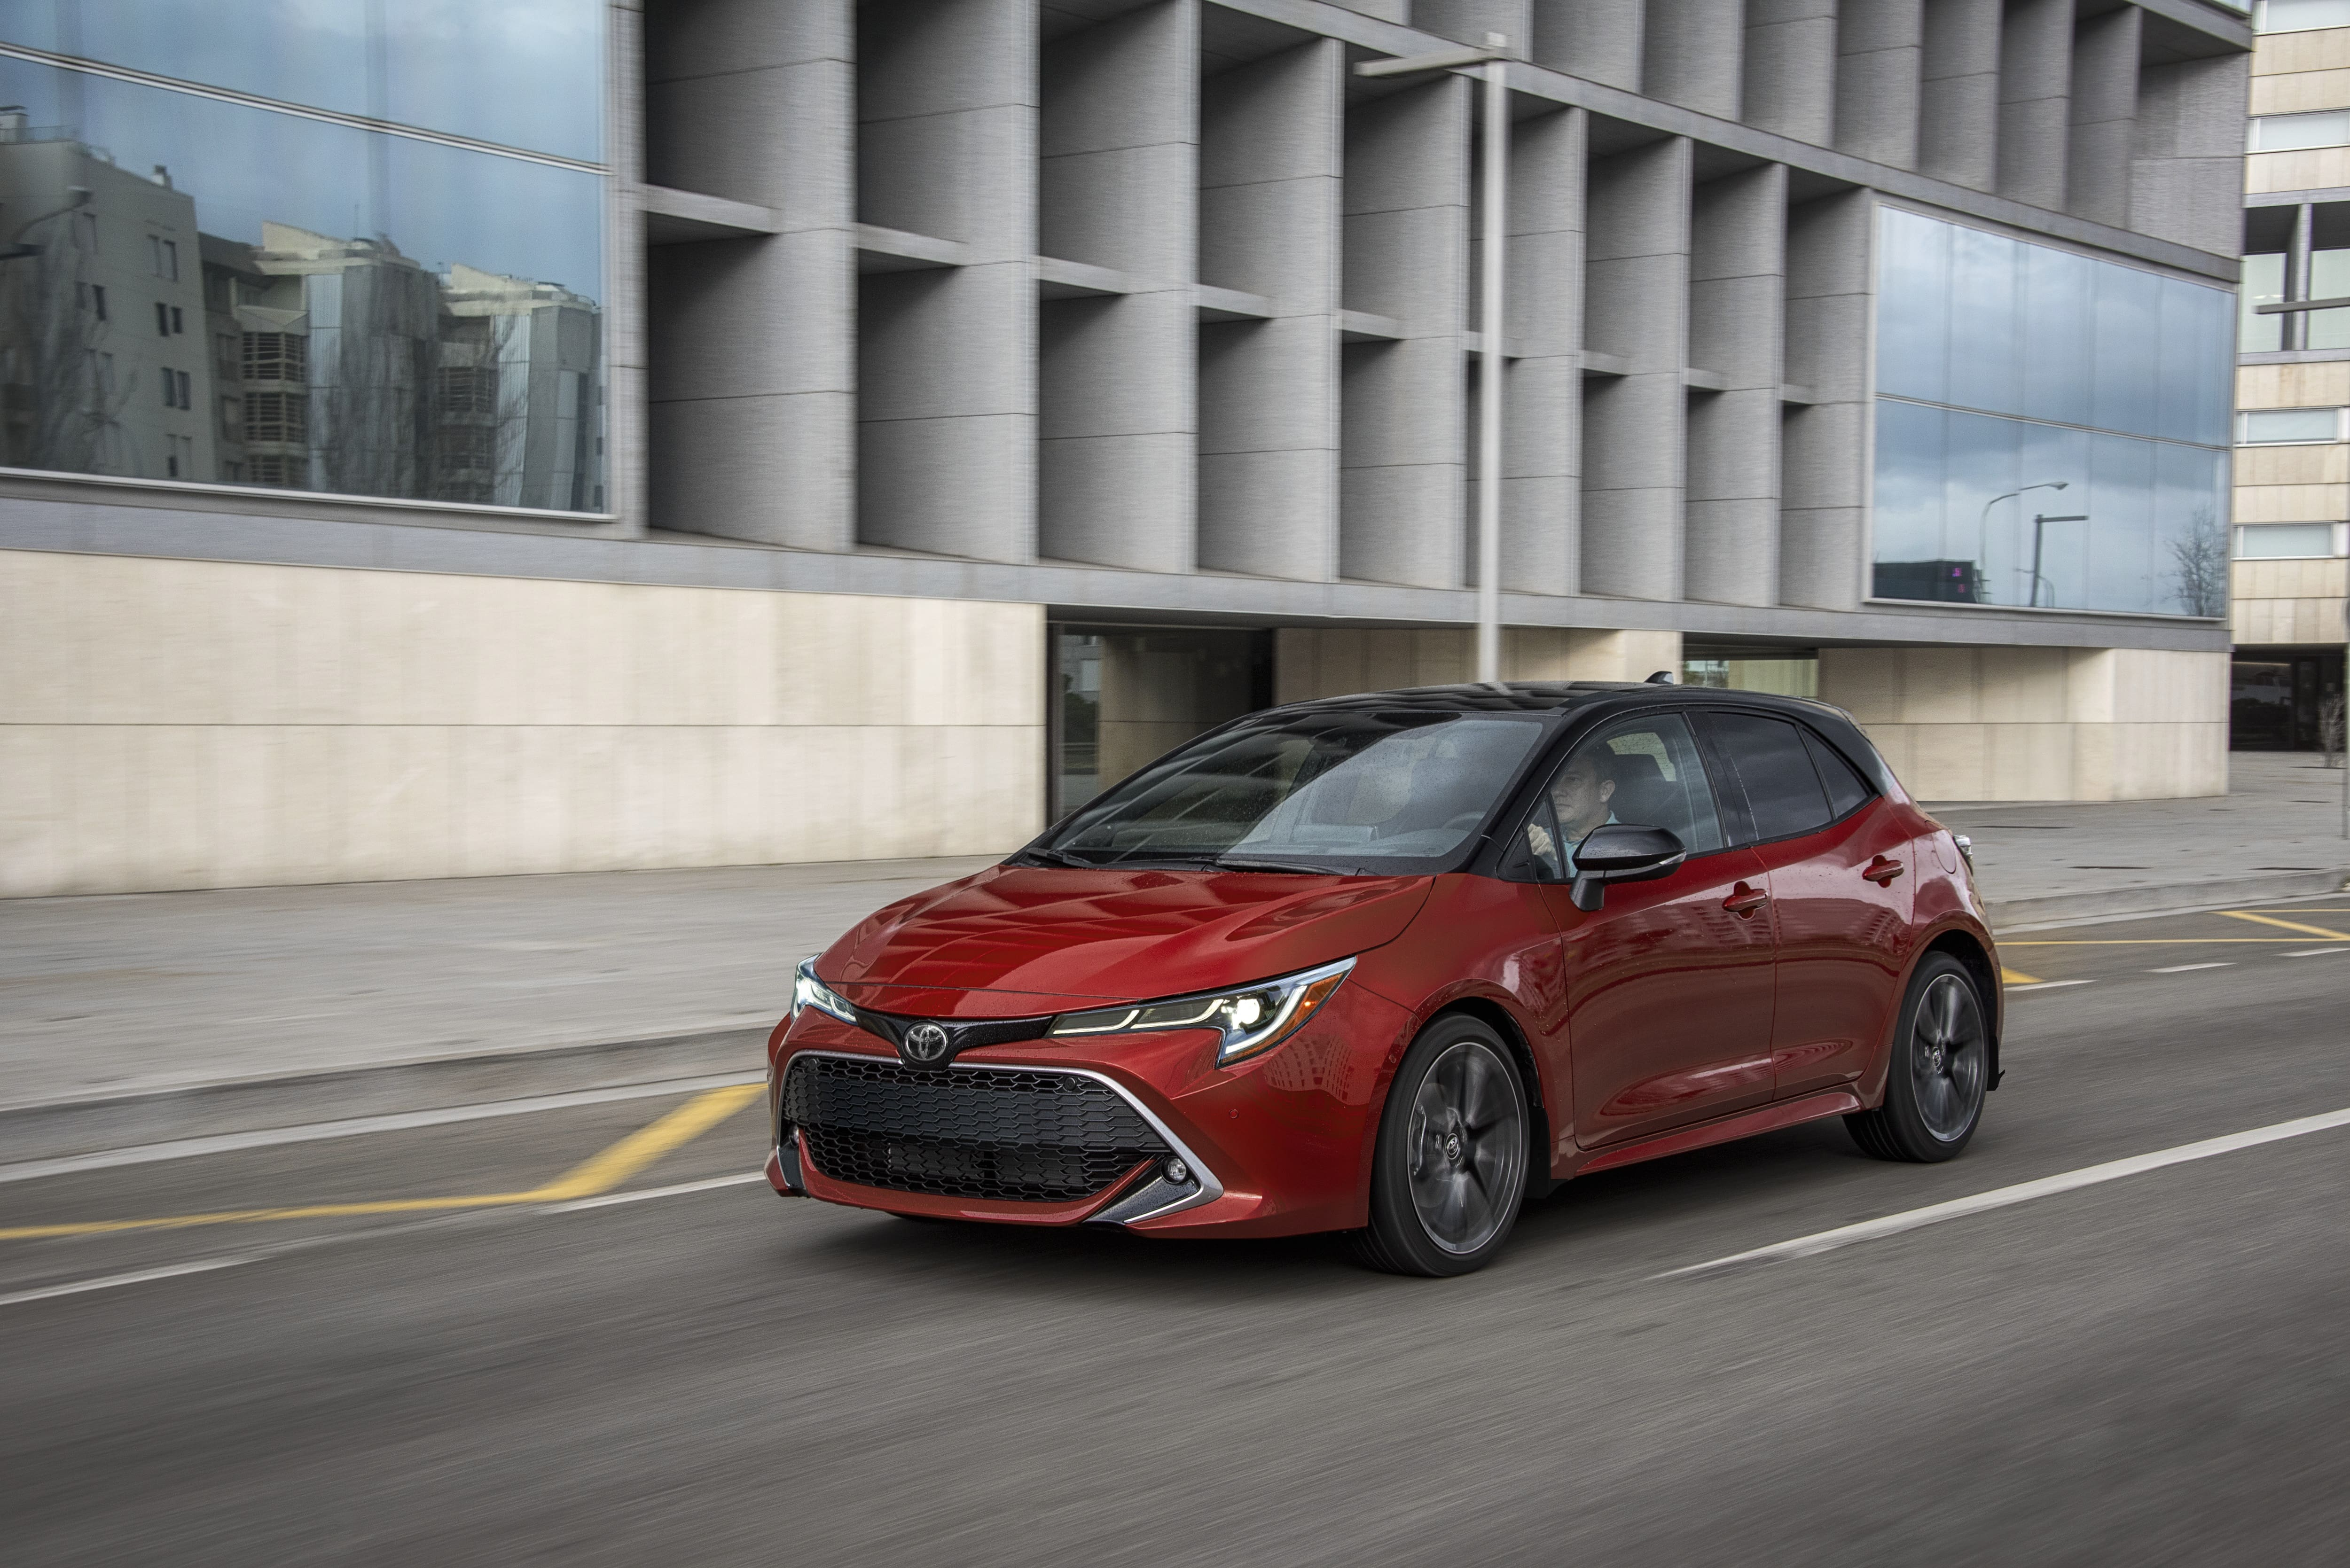 2021 Toyota Corolla Hatchback Exterior Overview